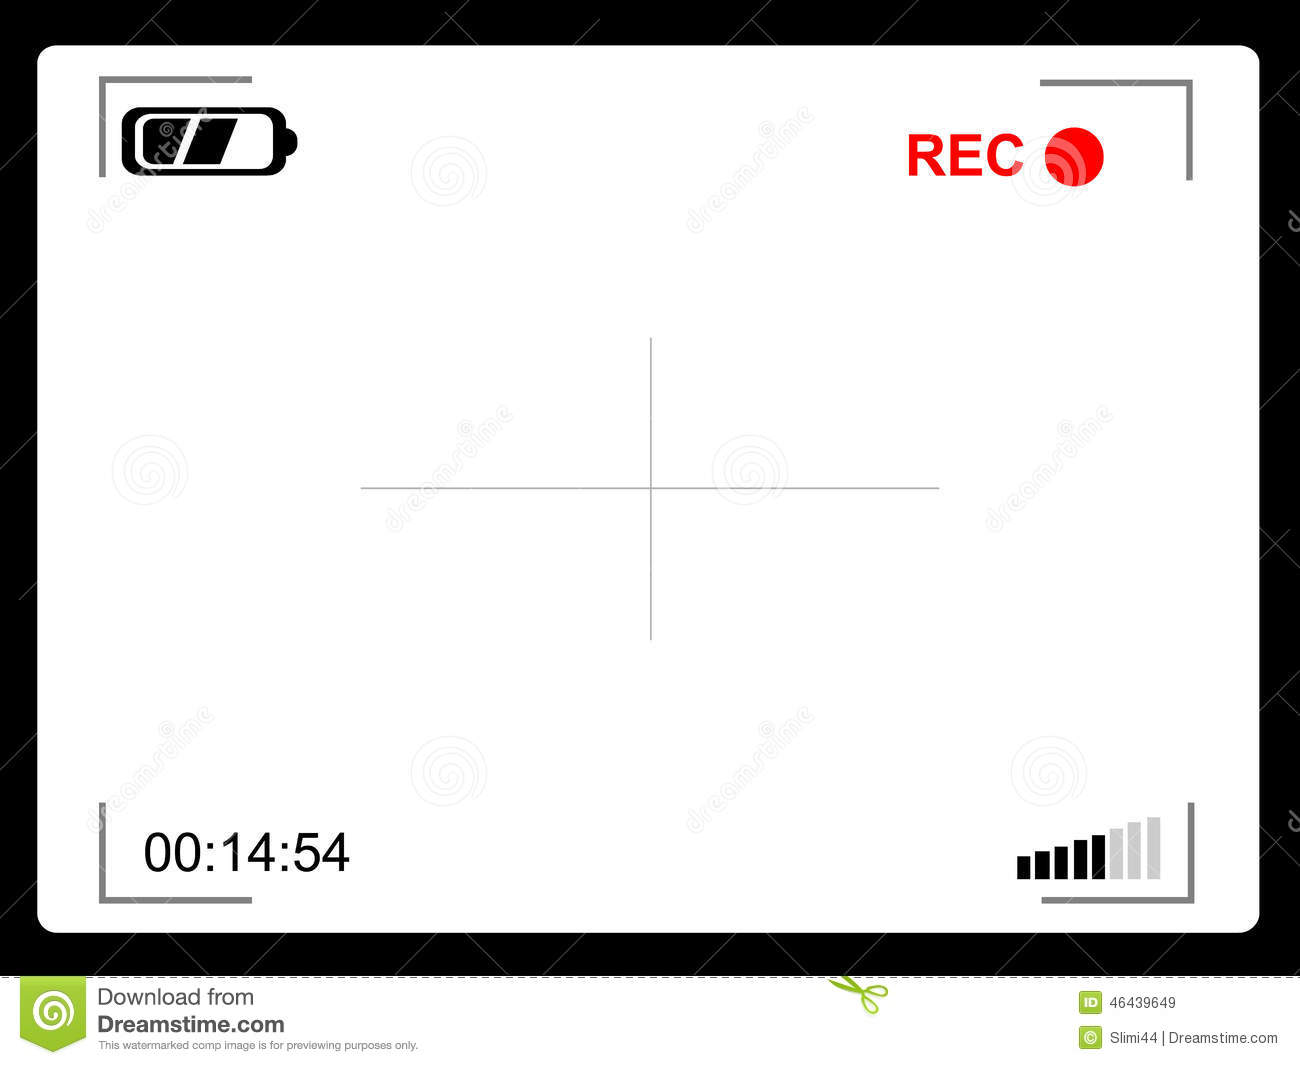 Video camera viewfinder stock vector. Illustration of lens